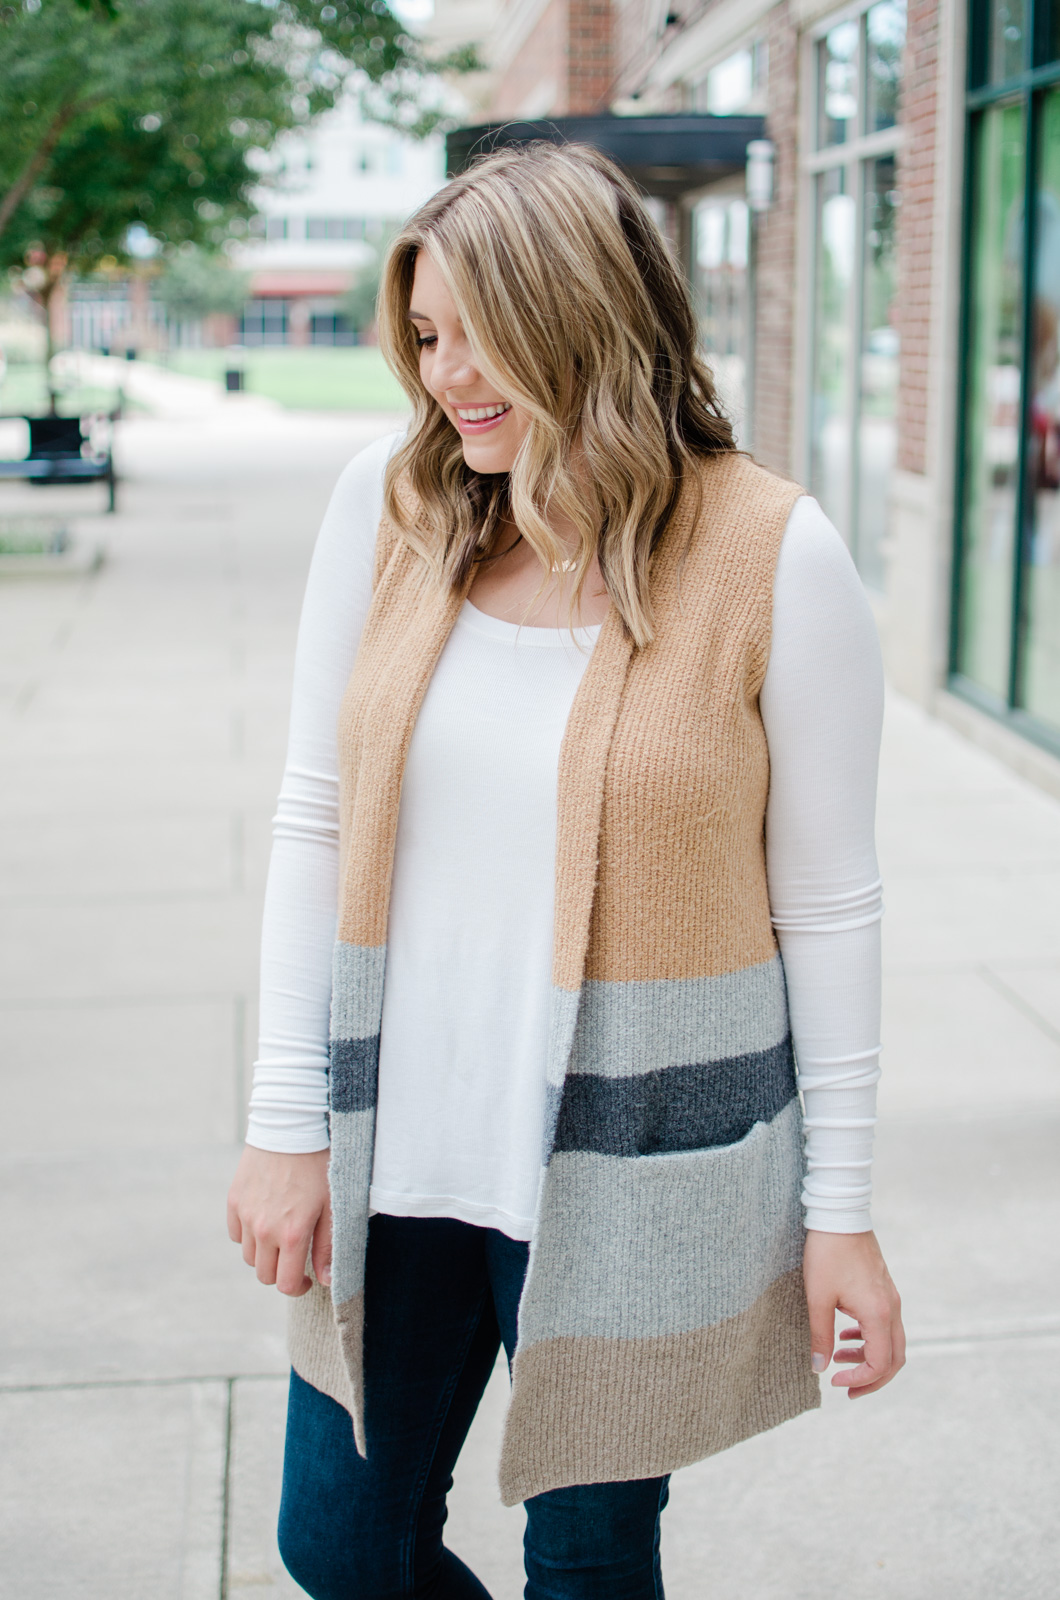 fall long sweater vest outfit - how to wear an open sweater vest outfit for fall! | bylaurenm.com